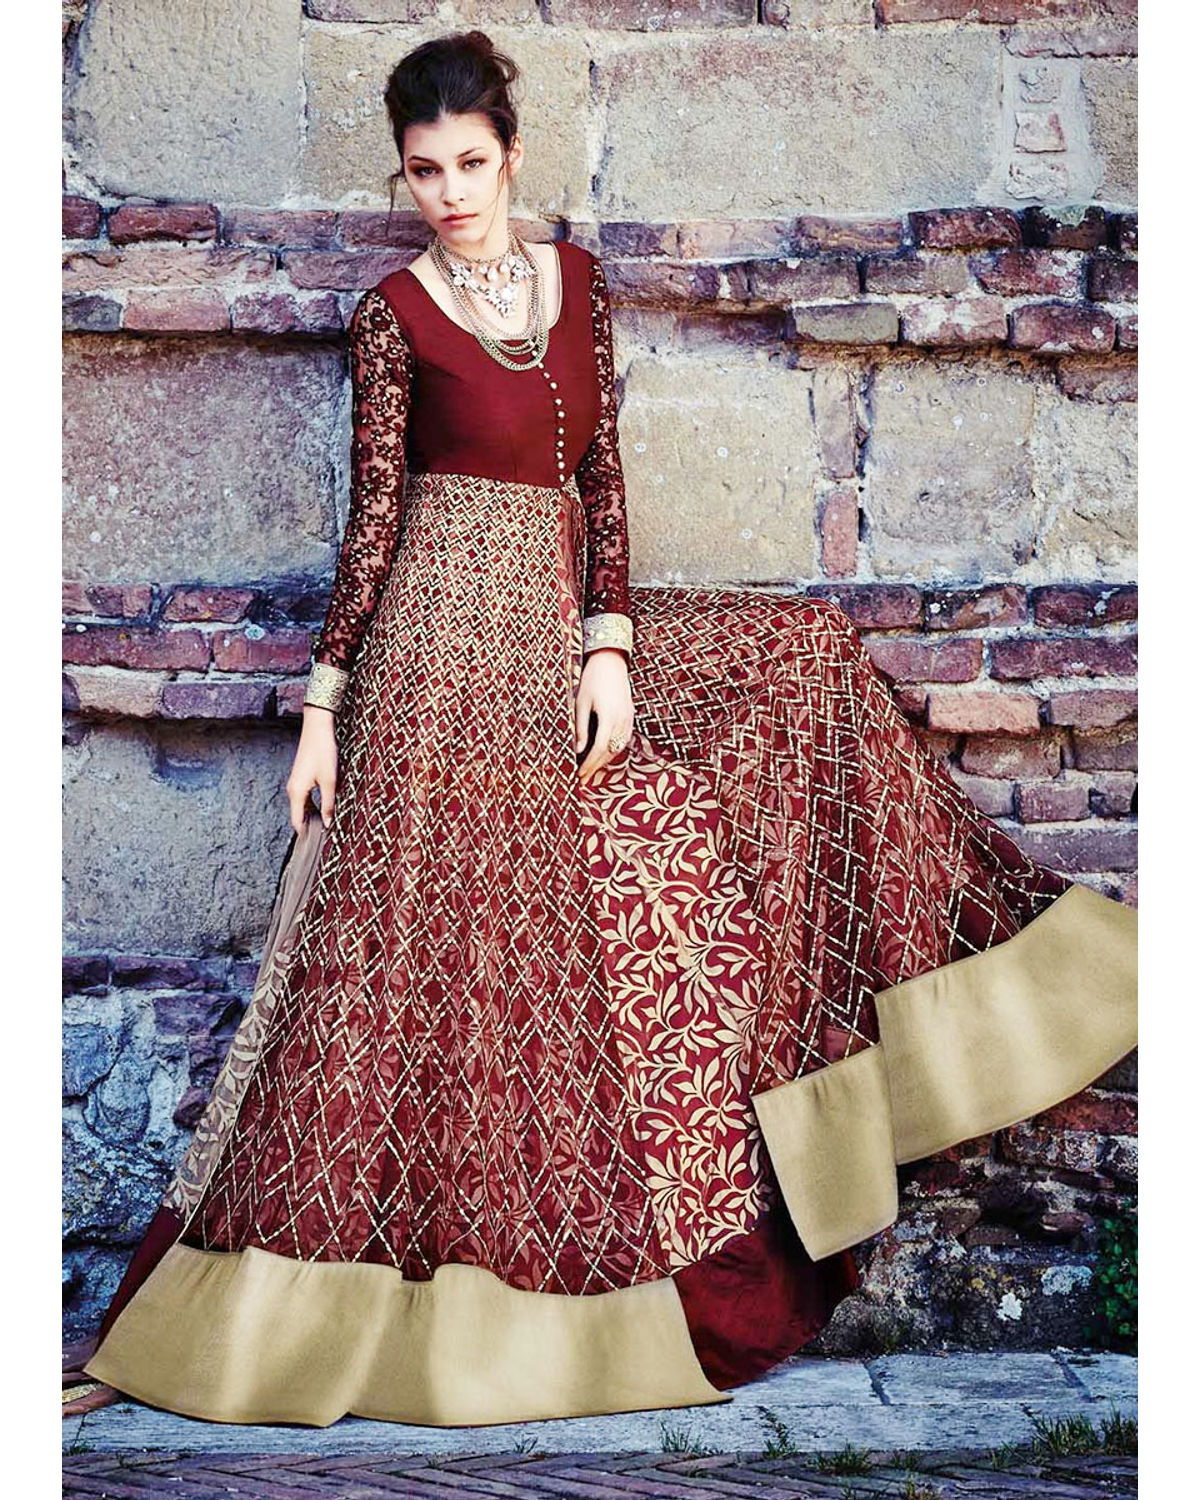 Anarkali gown style dresses